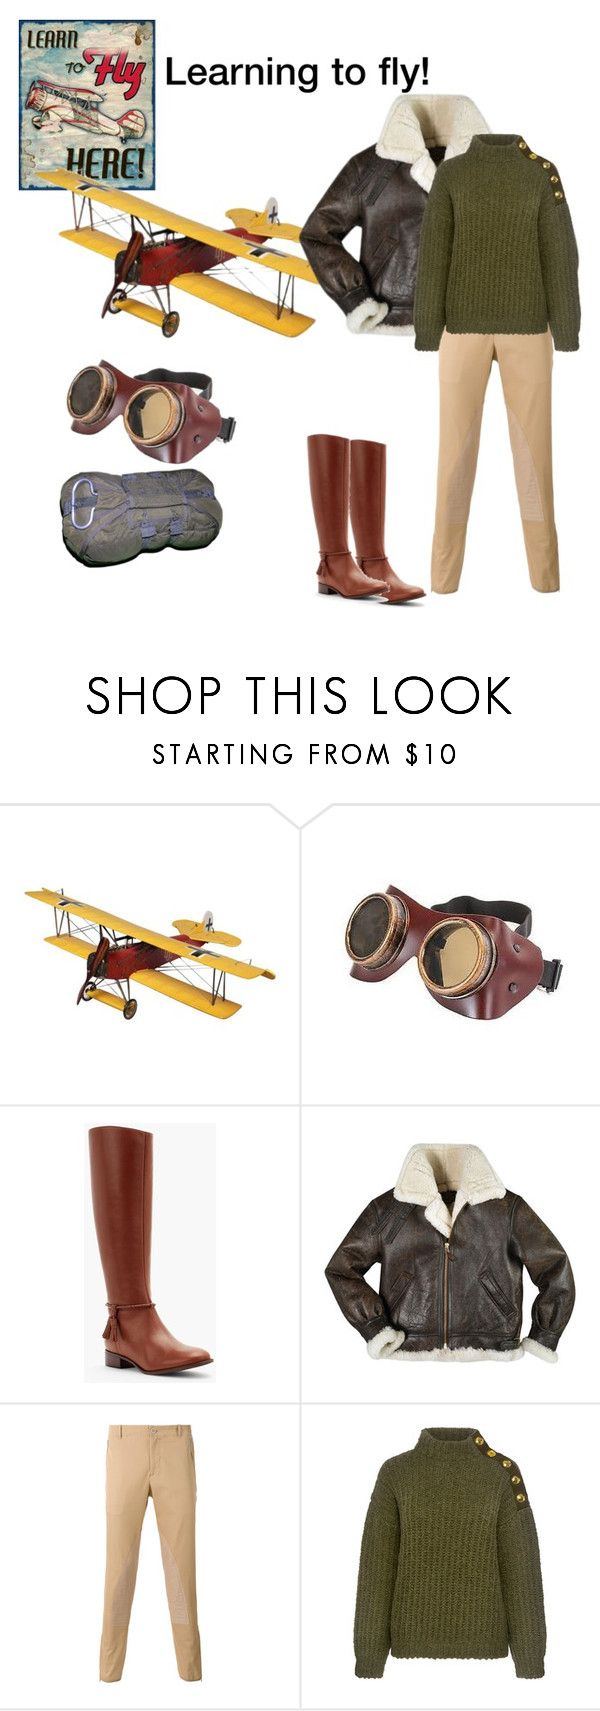 """""""Learning to fly!"""" by chauert ❤ liked on Polyvore featuring Talbots, Alexander McQueen and Boutique Moschino"""